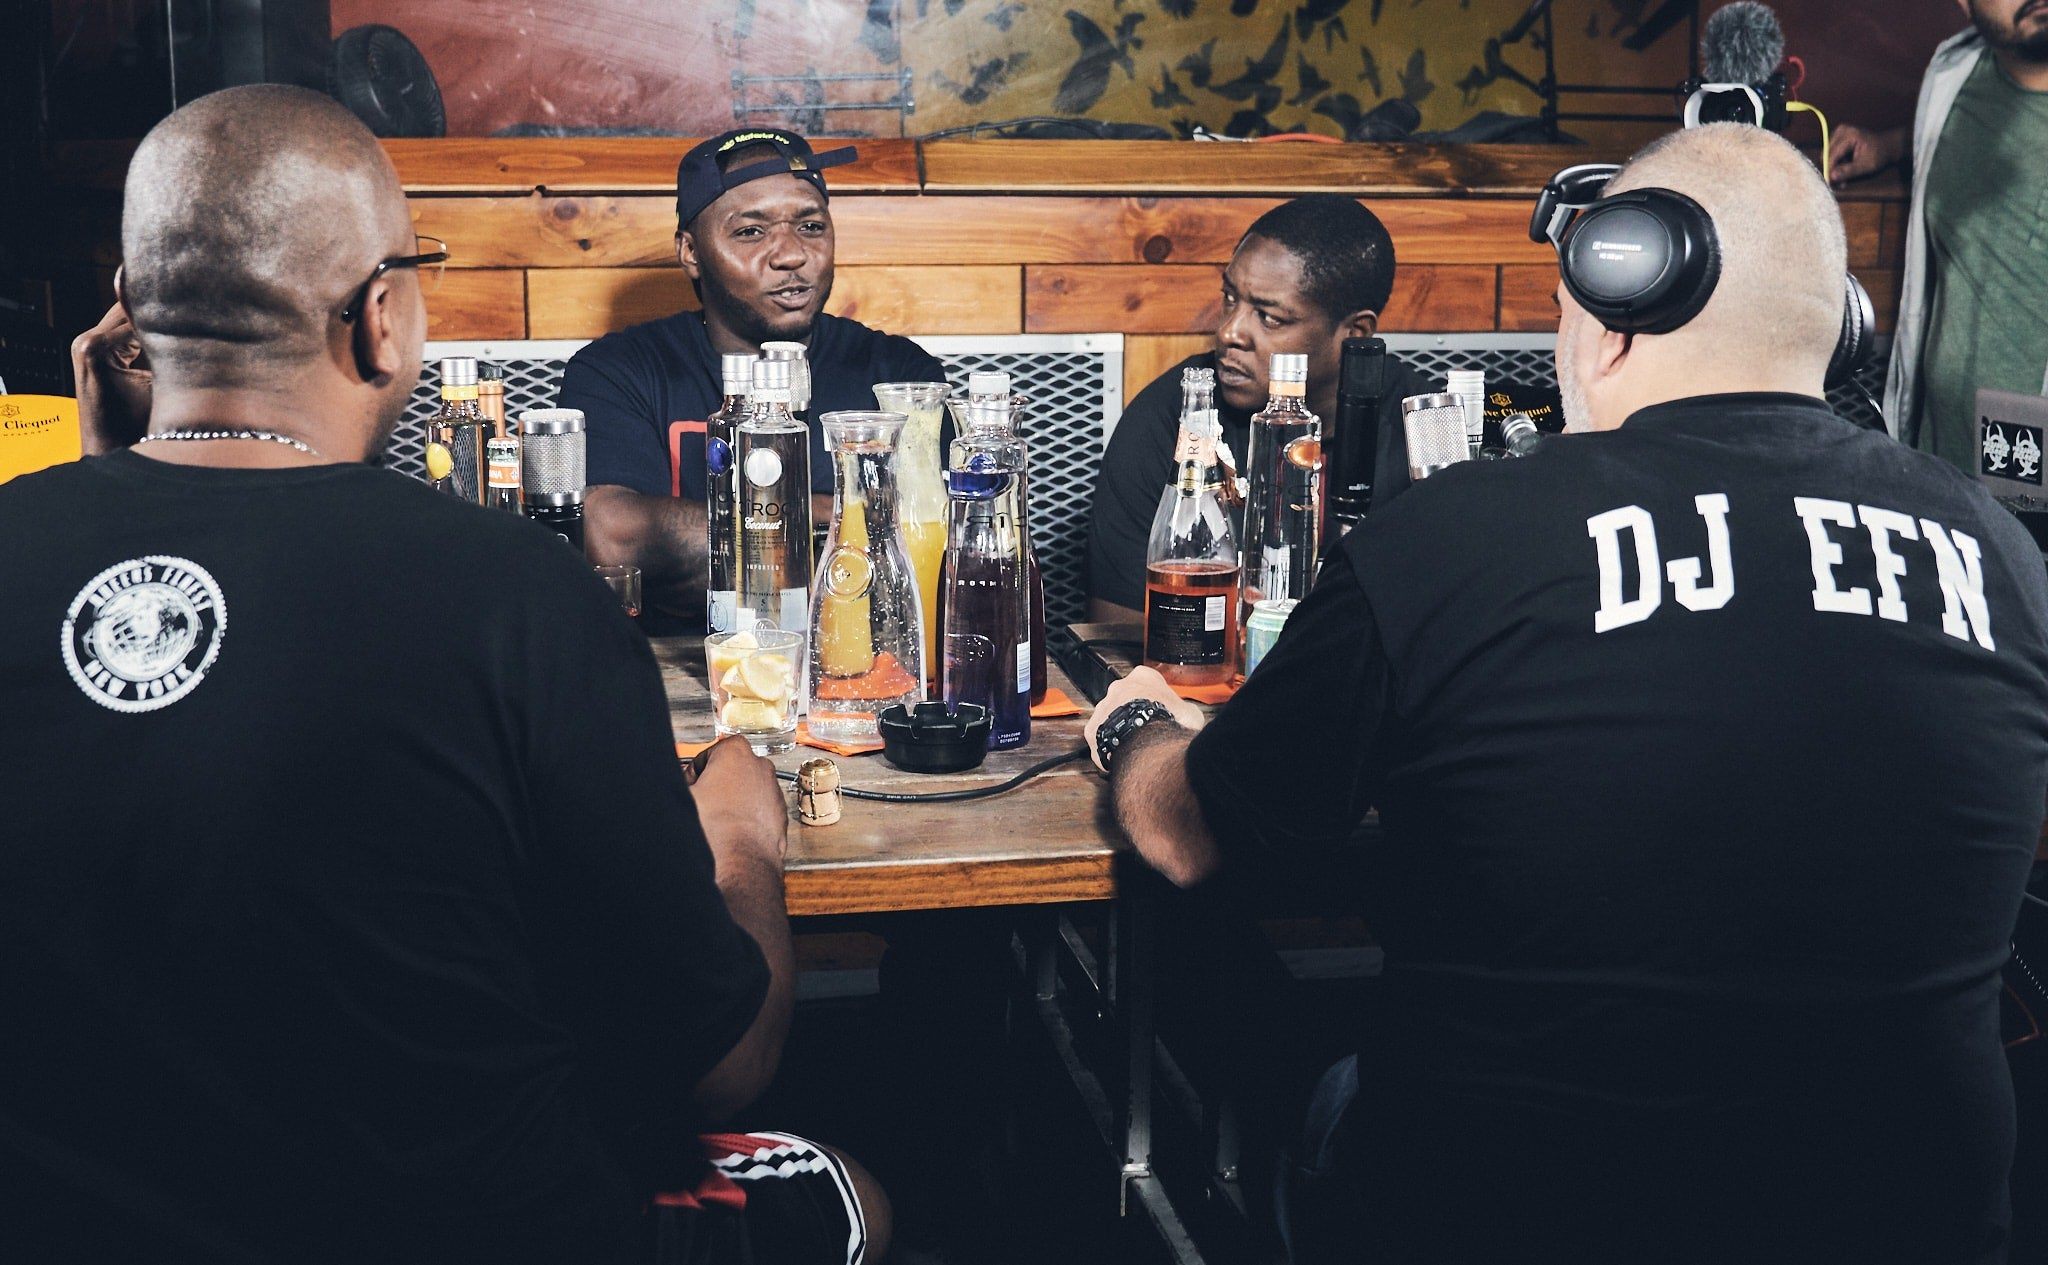 lil-cease-drink-champs-podcast